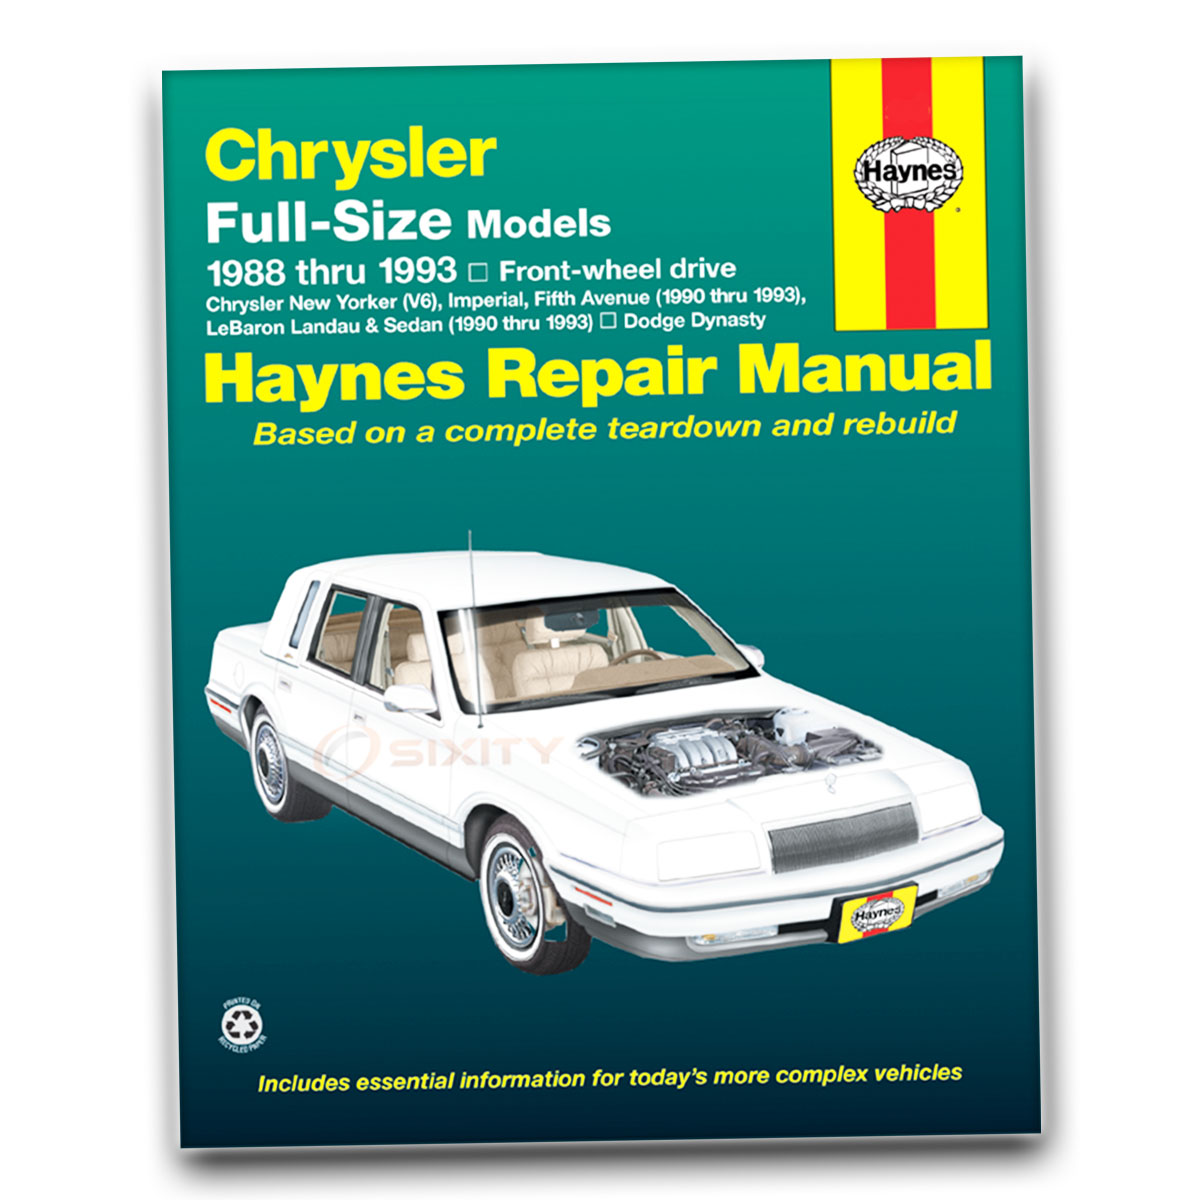 1990 Chrysler Imperial Wiring Diagram Trusted Diagrams 1991 1989 New Yorker Example Electrical 2001 Voyager